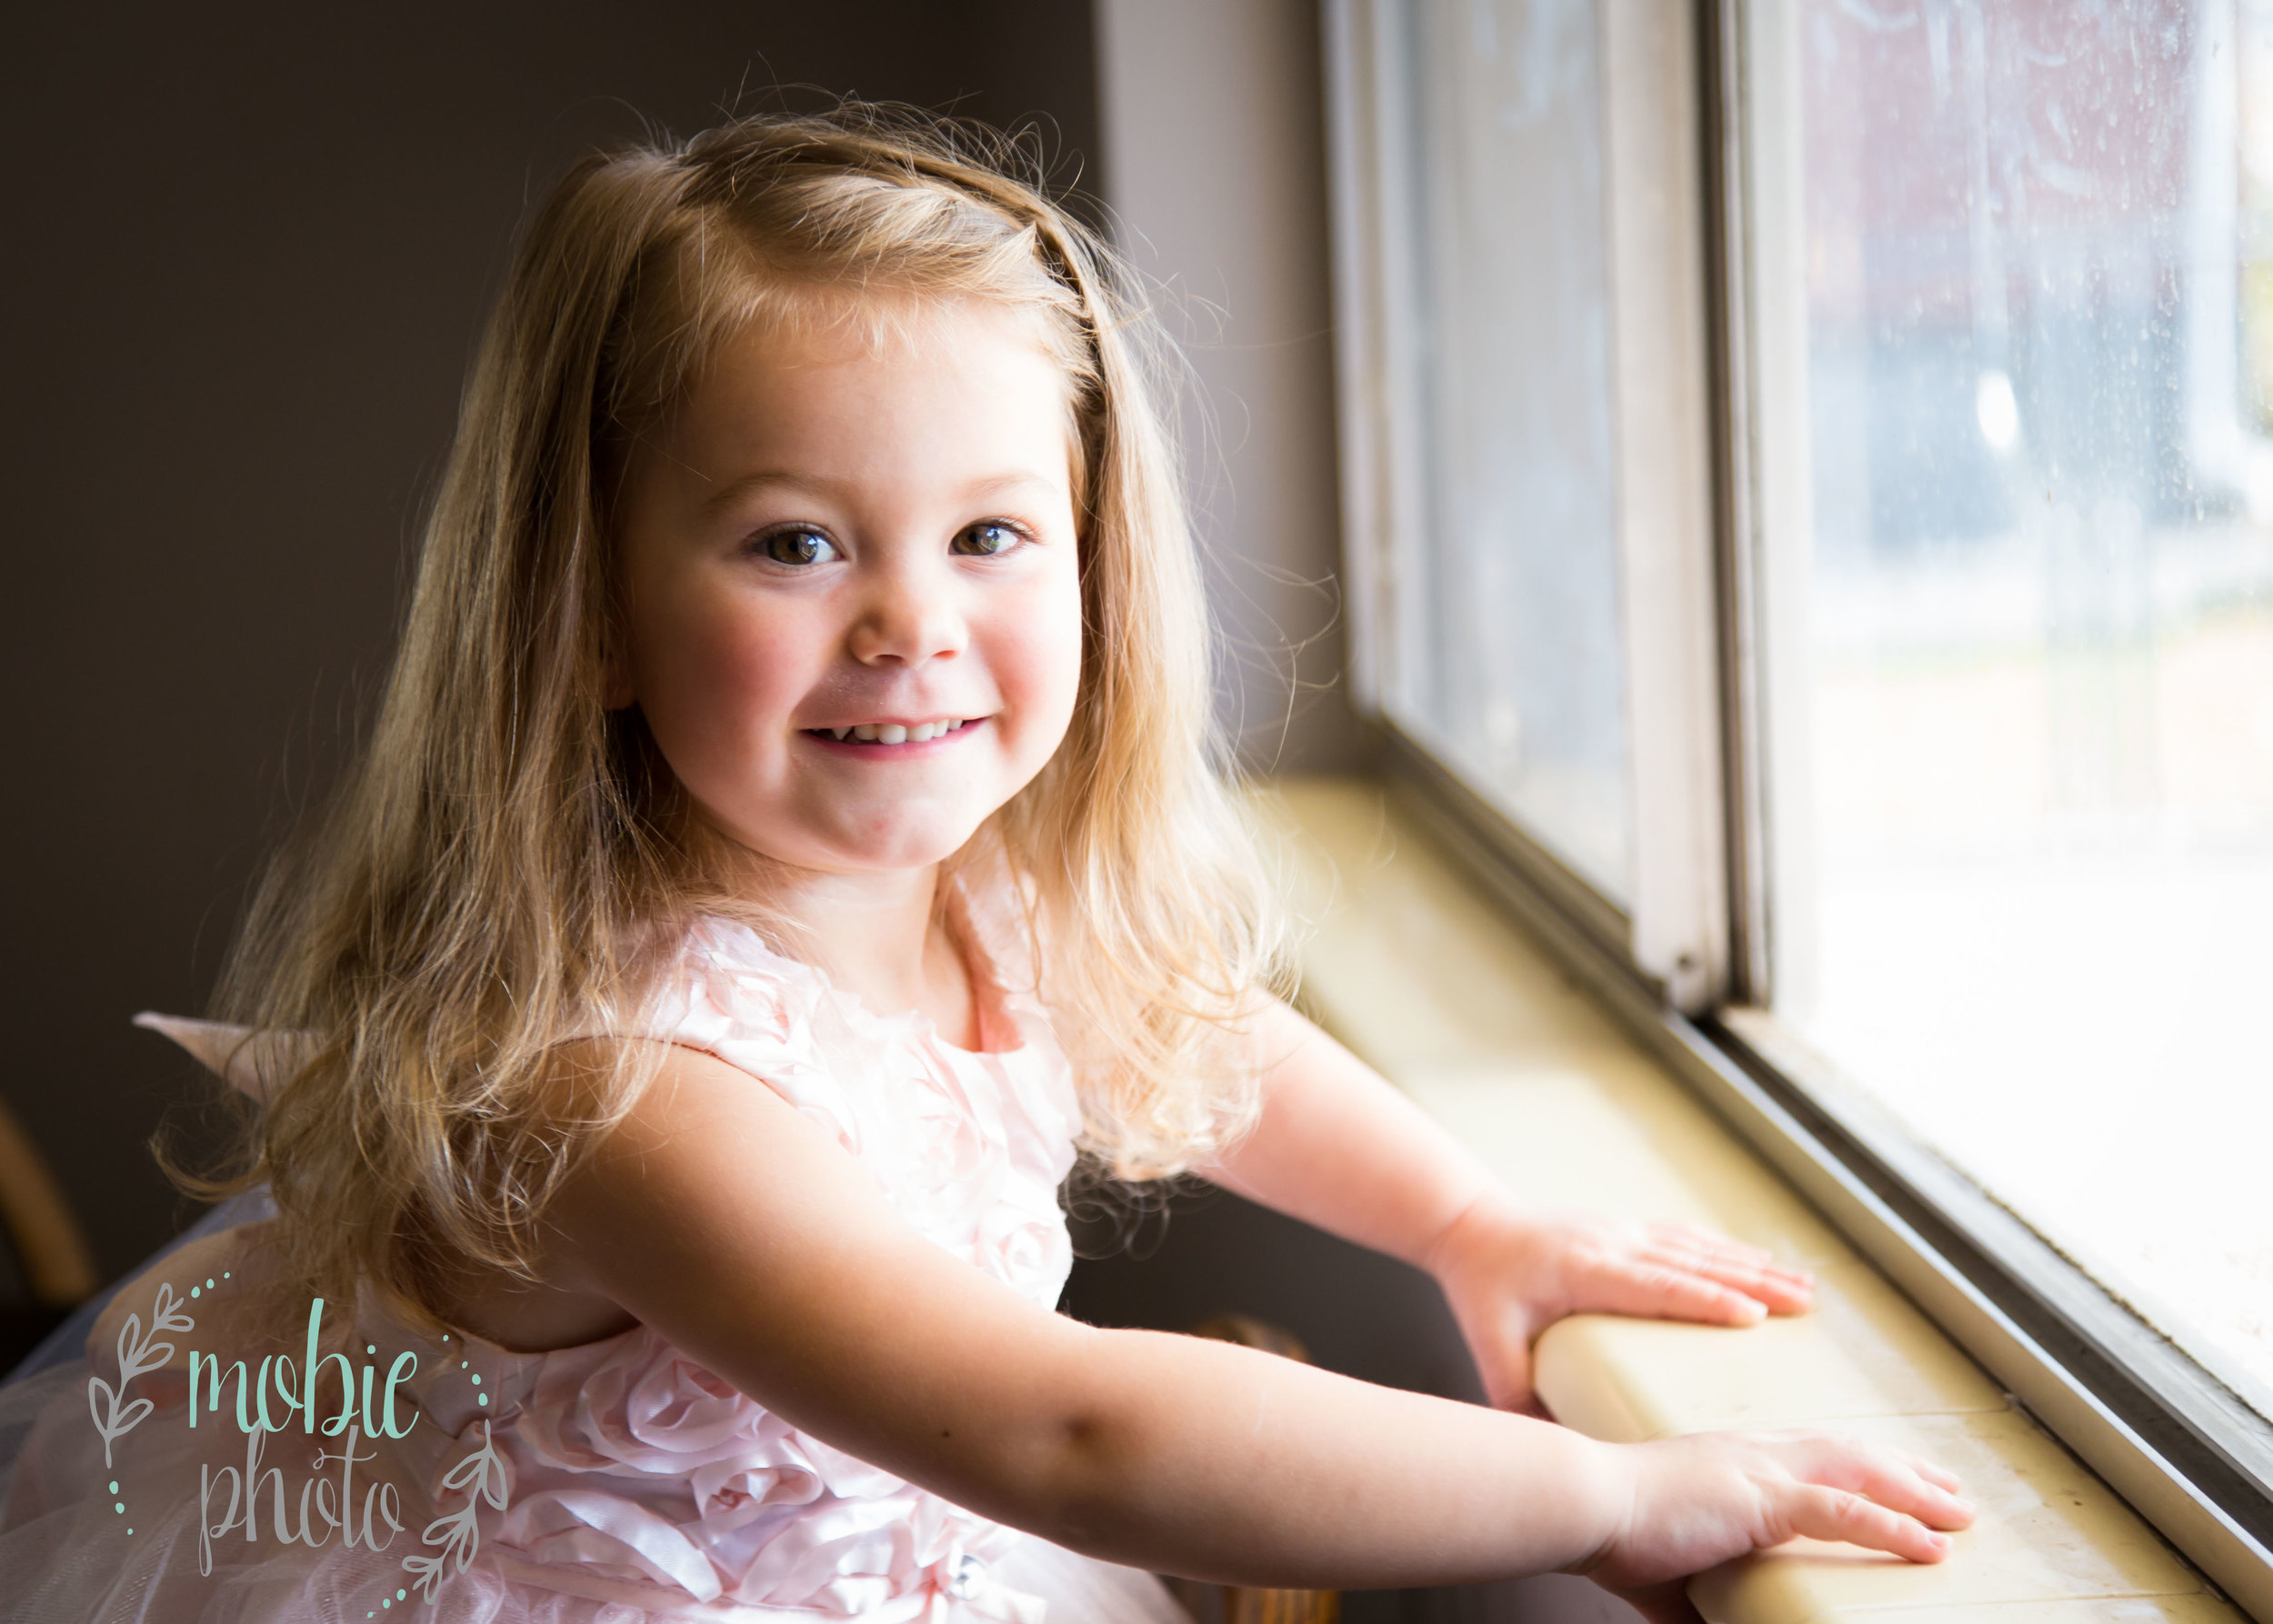 Two year old at her kitchen window